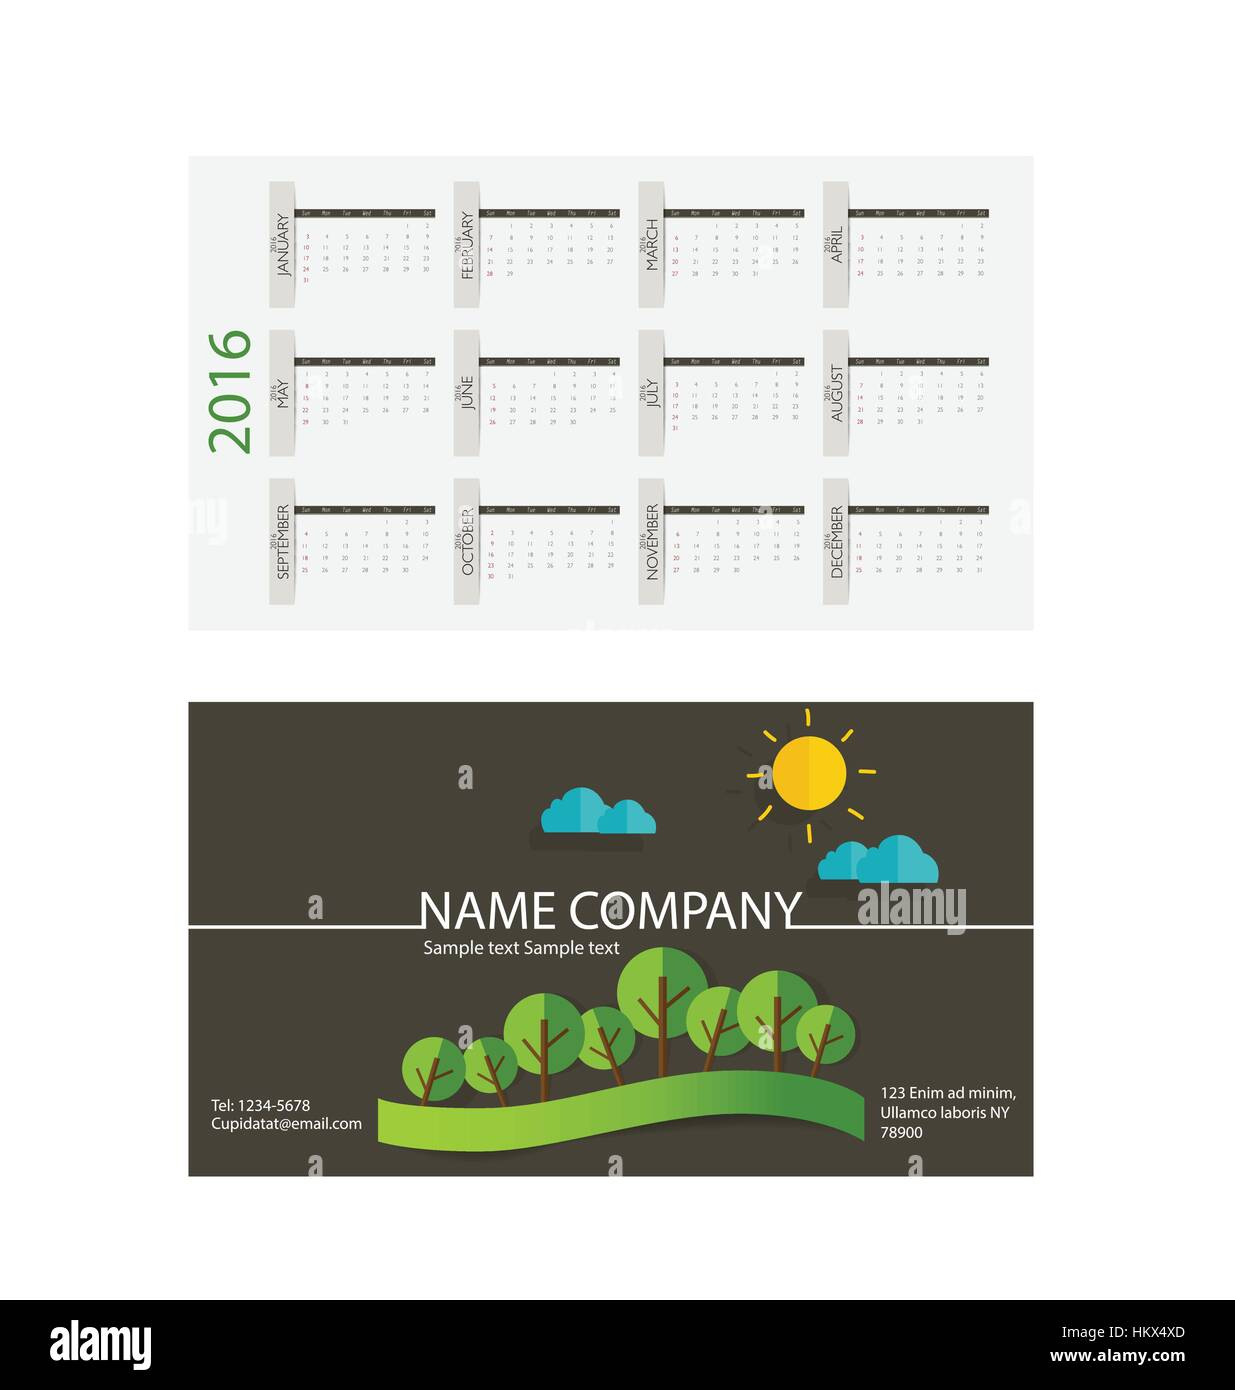 2016 calendar modern business card template with nature background 2016 calendar modern business card template with nature background vector illustration reheart Images